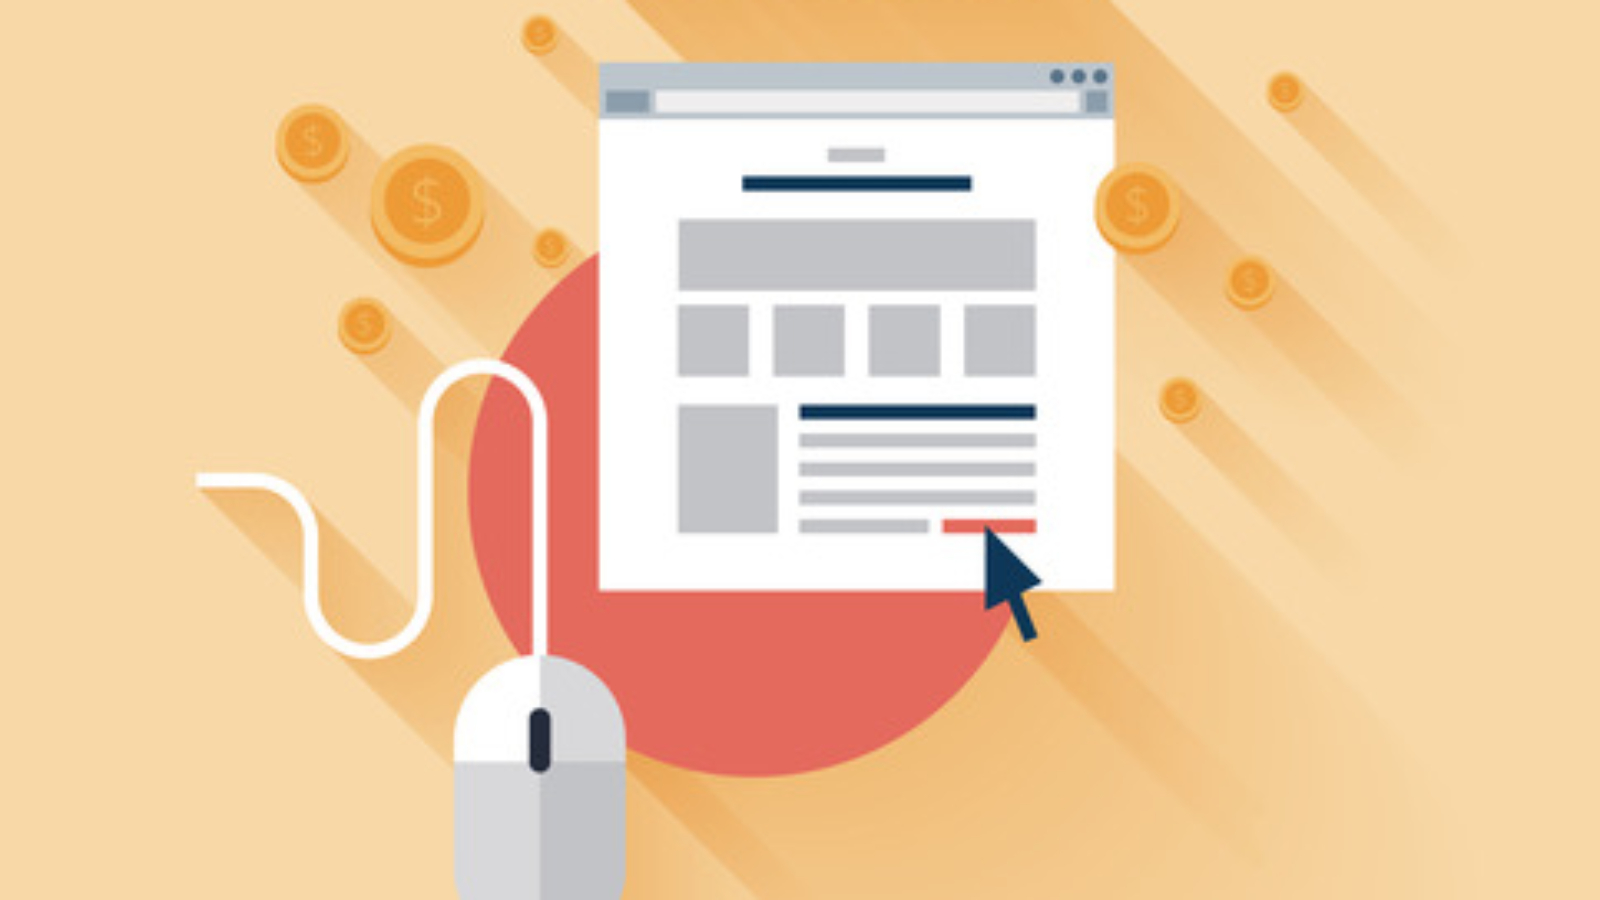 Flat design vector illustration concept of pay per click internet advertising model when the ad is clicked. Isolated on stylish background